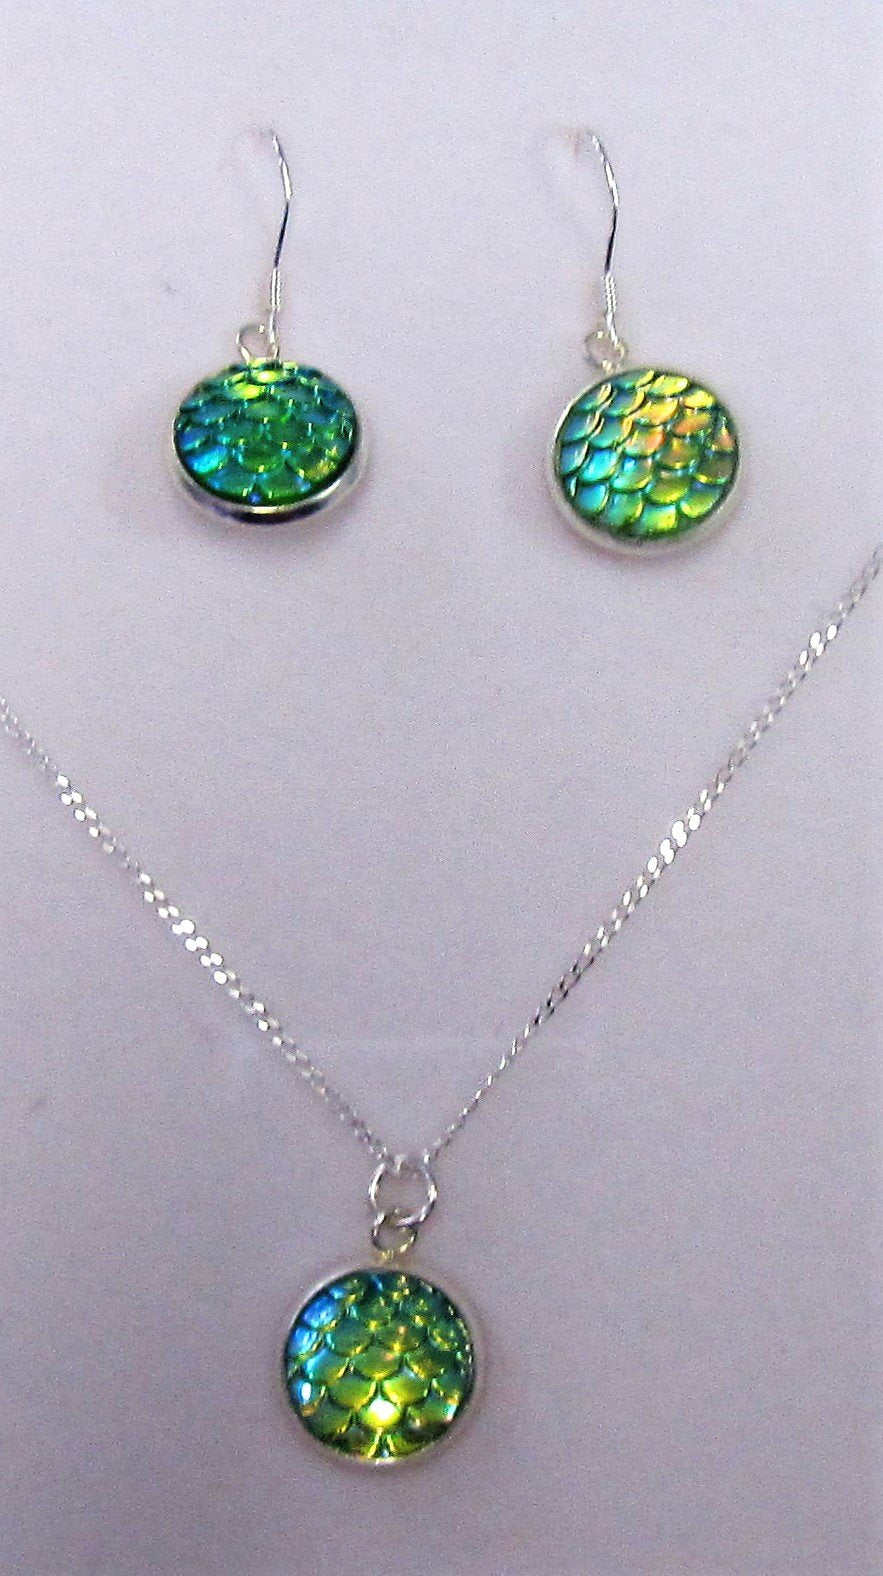 Handcrafted 925 sterling silver green necklace and earring set